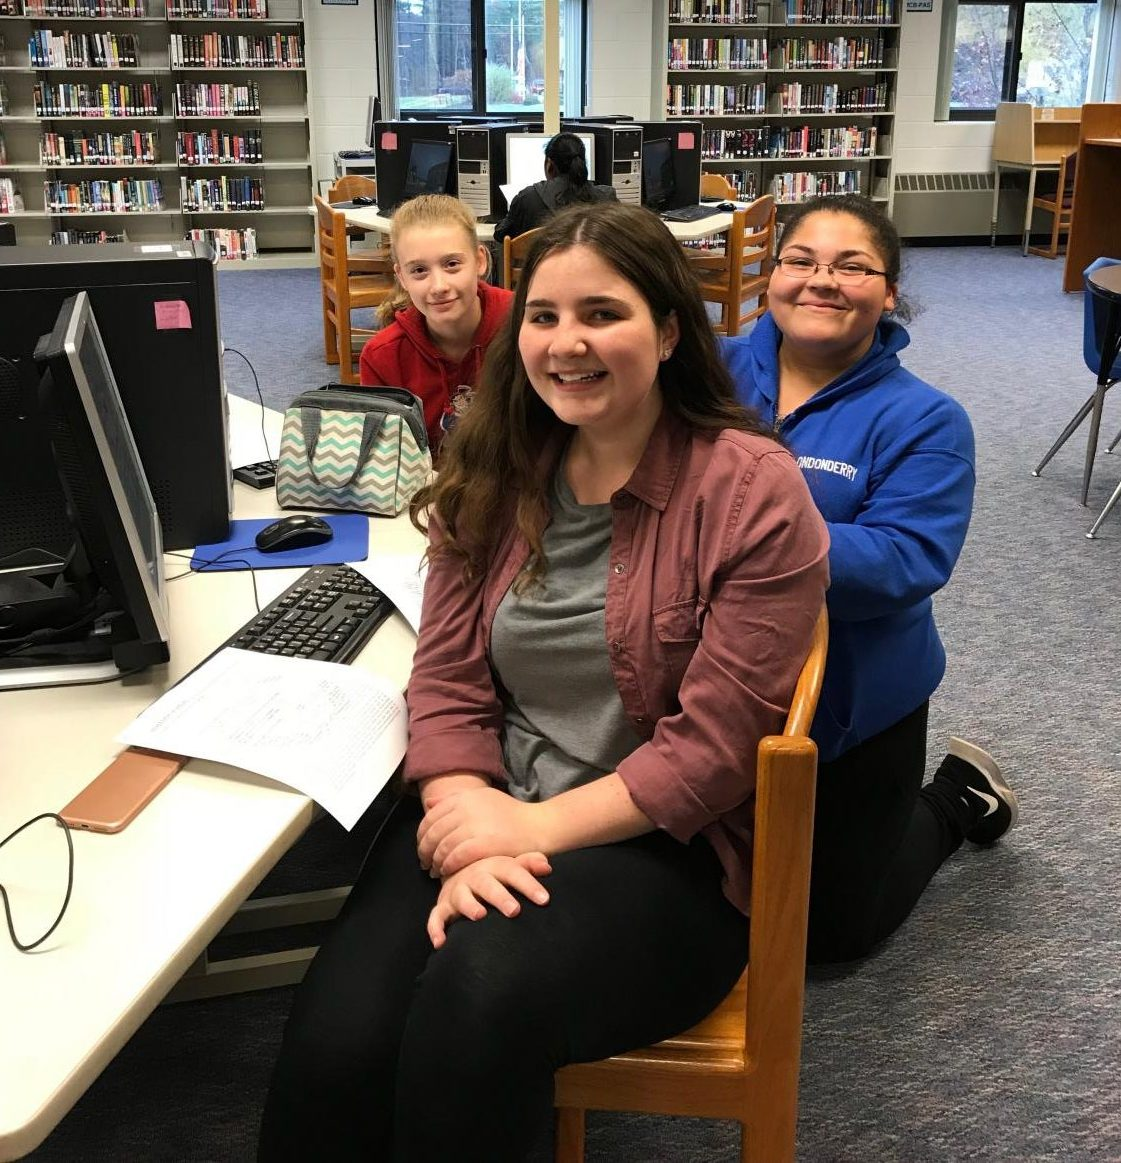 Club members Maya Lincoln, Marie Duffy, and Haley Hines research in the library during a meeting.